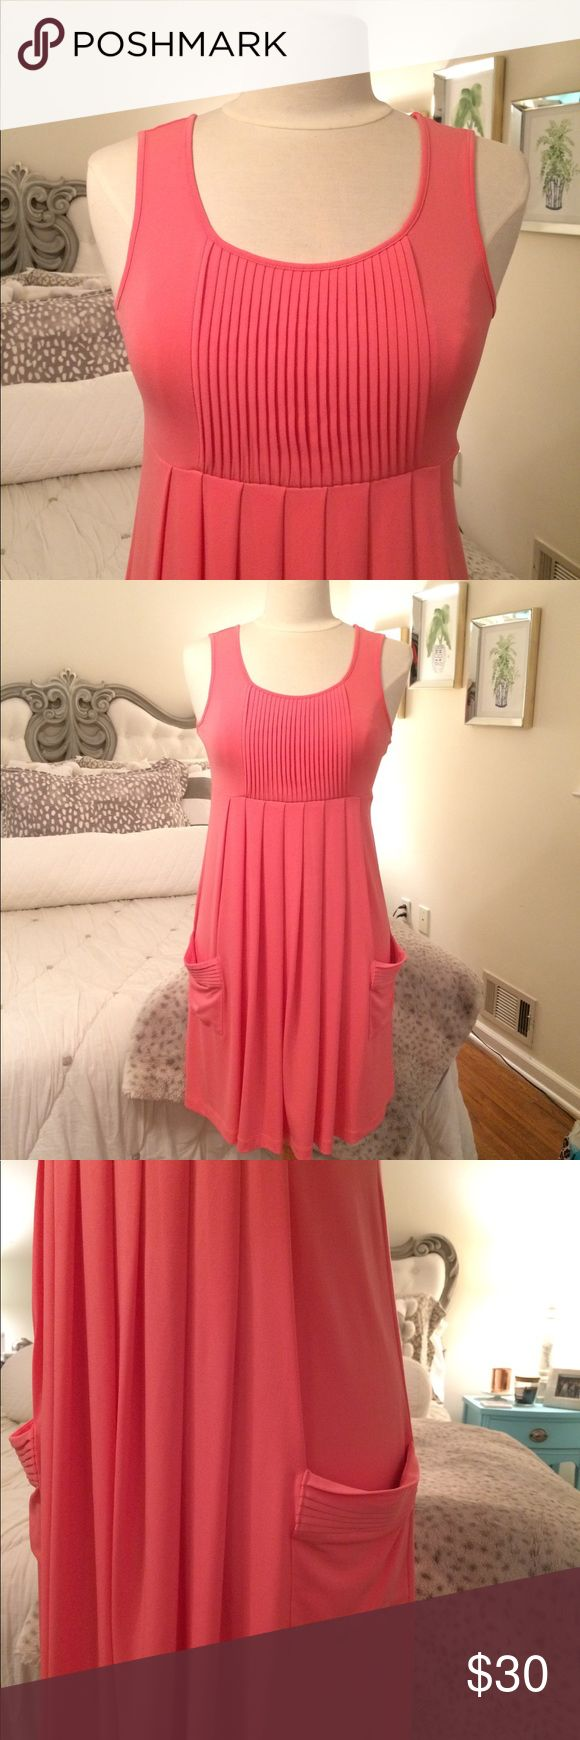 Calvin Klein Swing Dress coral • pleated with pockets • this is a great work dress! • just add a cute statement necklace - turquoise or gold would look great. • excellent used condition: worn once • freshly dry cleaned Calvin Klein Dresses